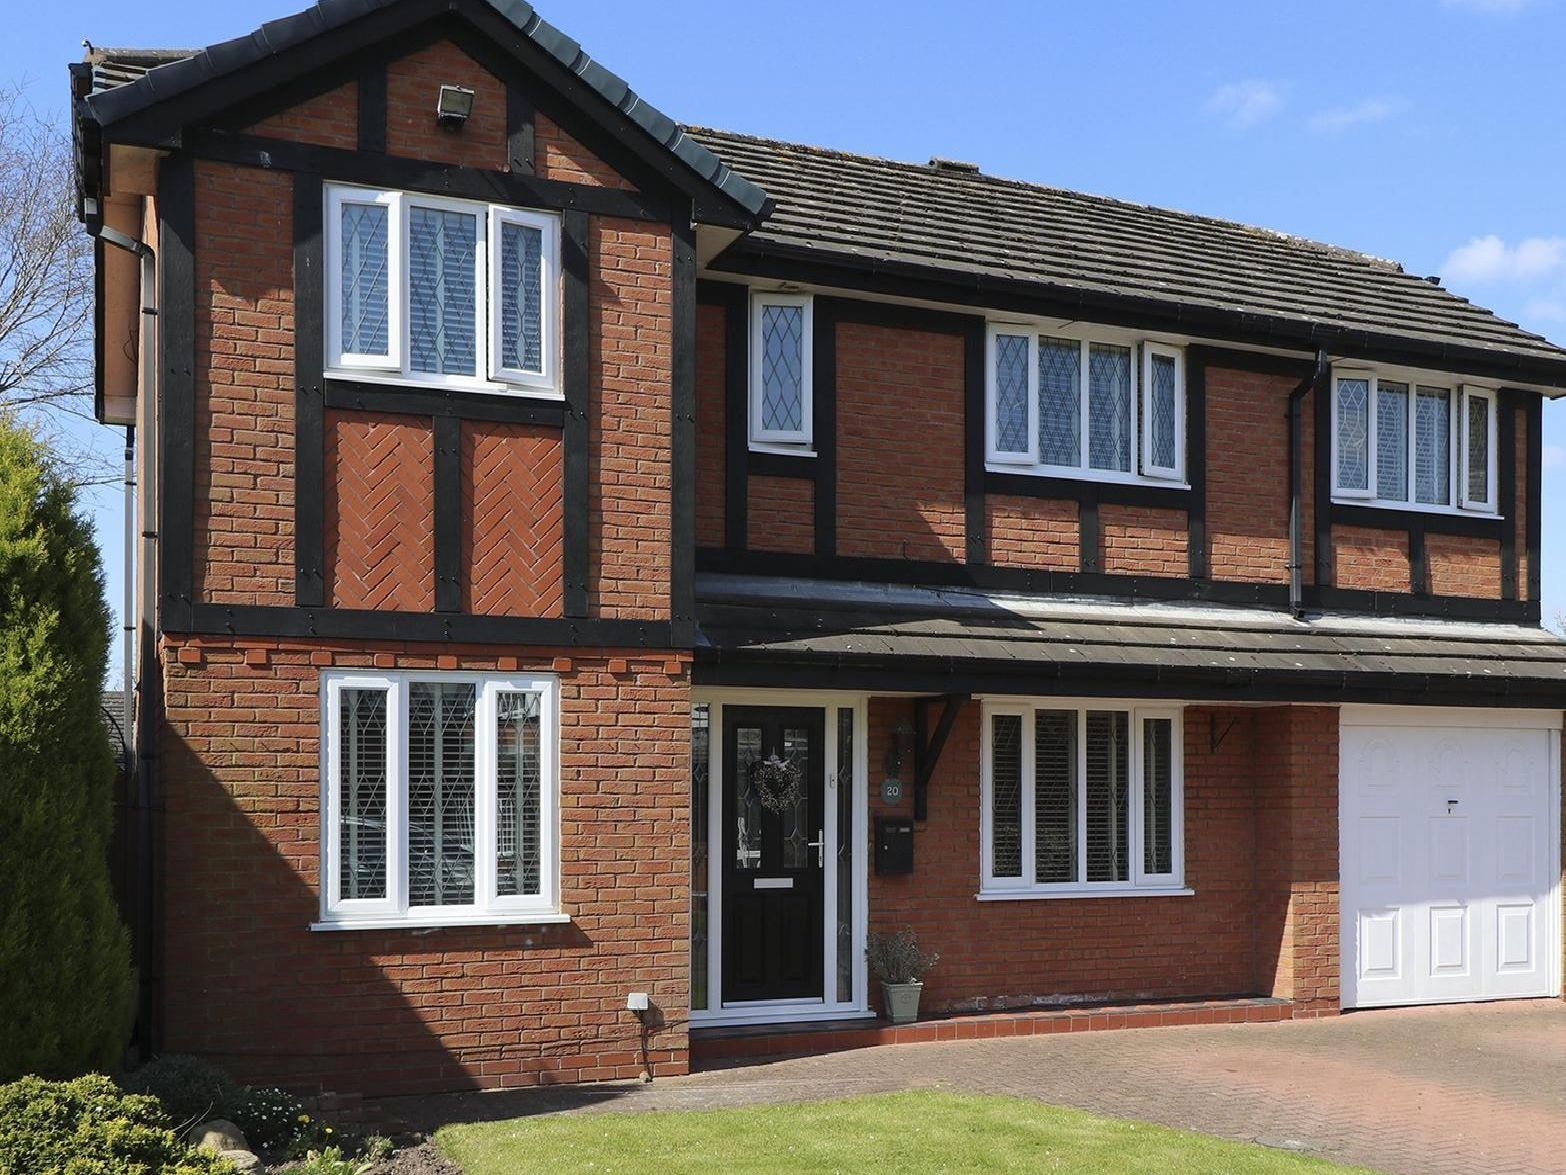 This modern four bedroom detached house in Freckleton Village is up for sale for 260,000